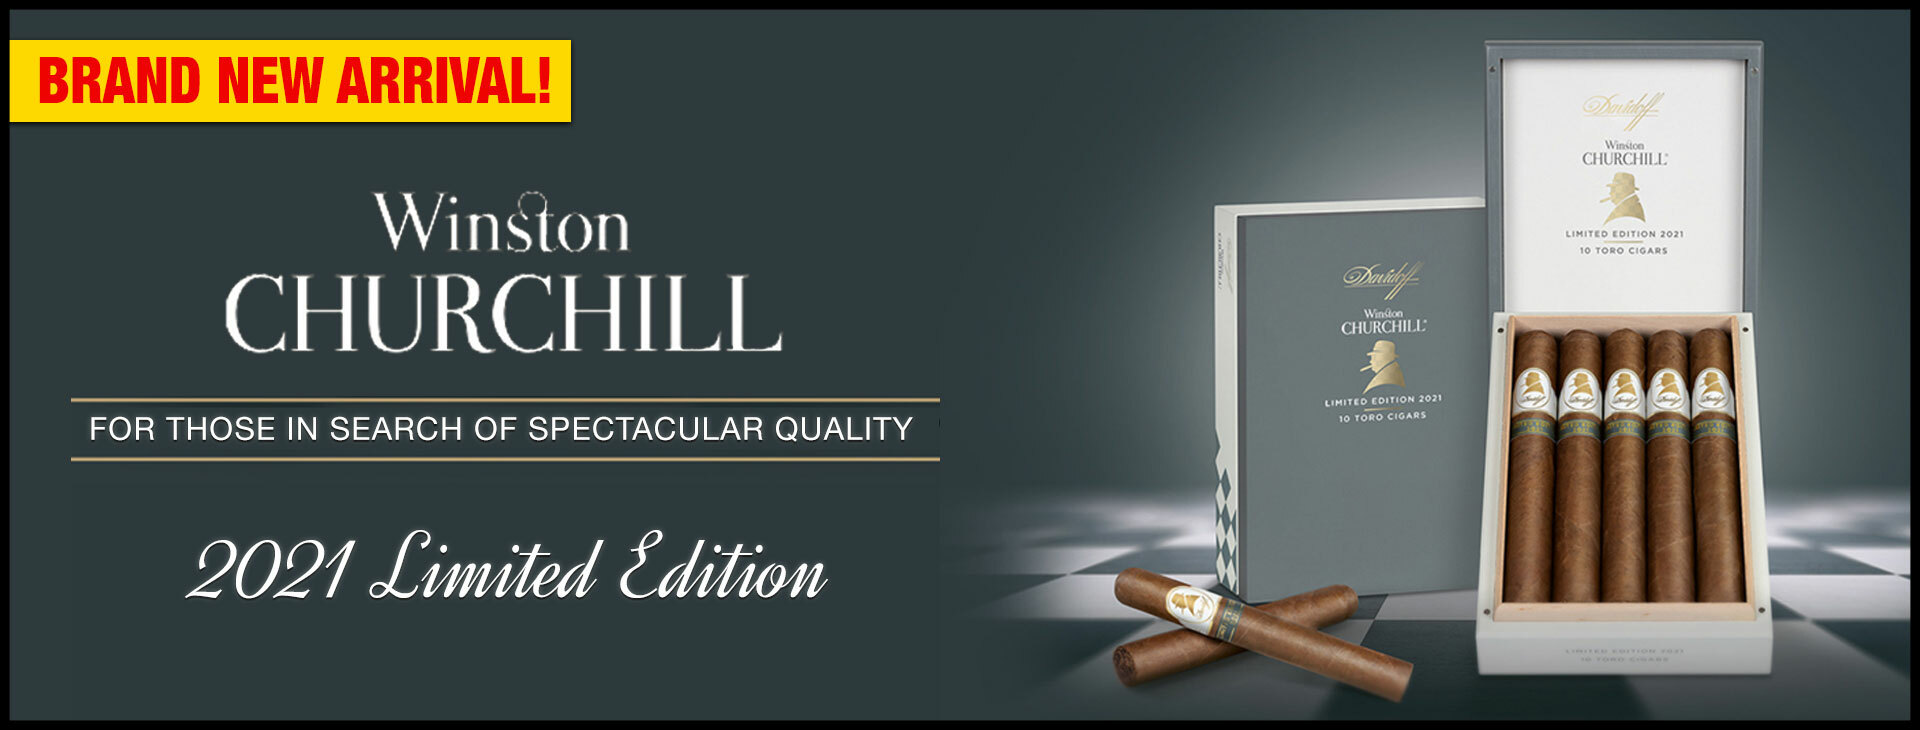 Winston Churchill 2021 Limited Edition Special